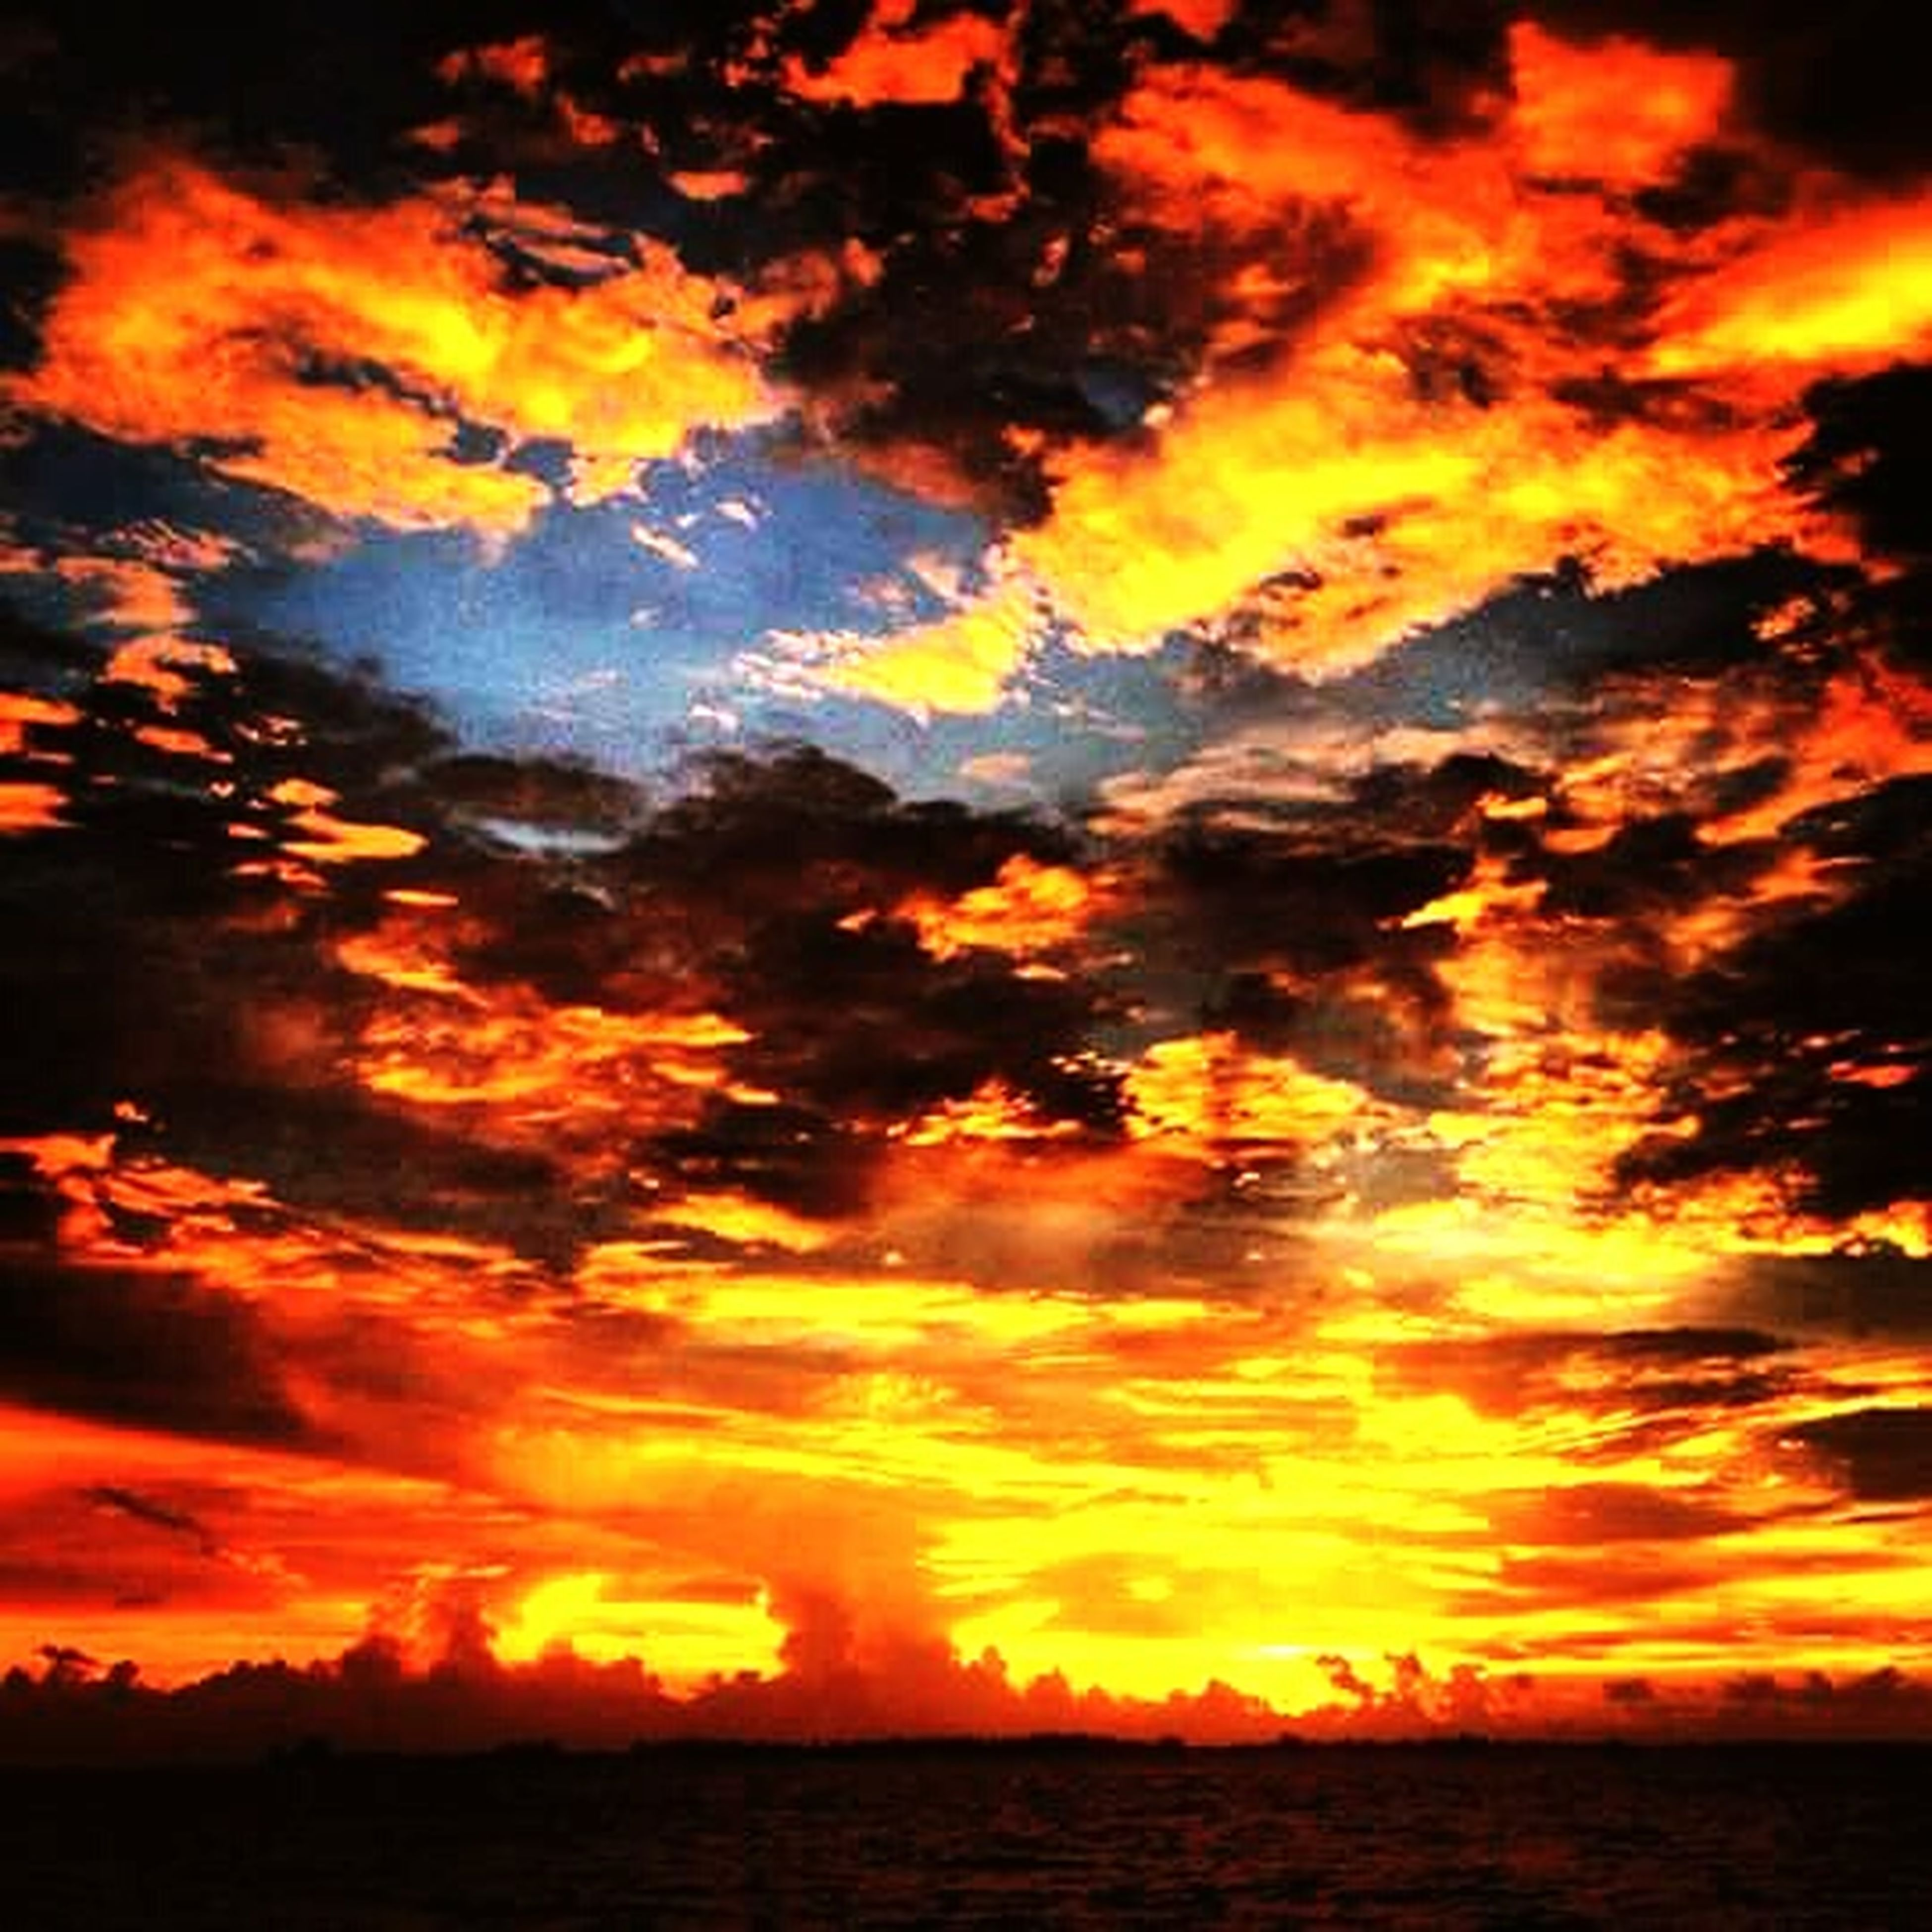 sunset, sky, orange color, scenics, beauty in nature, cloud - sky, tranquil scene, dramatic sky, tranquility, water, idyllic, nature, cloud, cloudy, waterfront, silhouette, reflection, majestic, moody sky, atmospheric mood